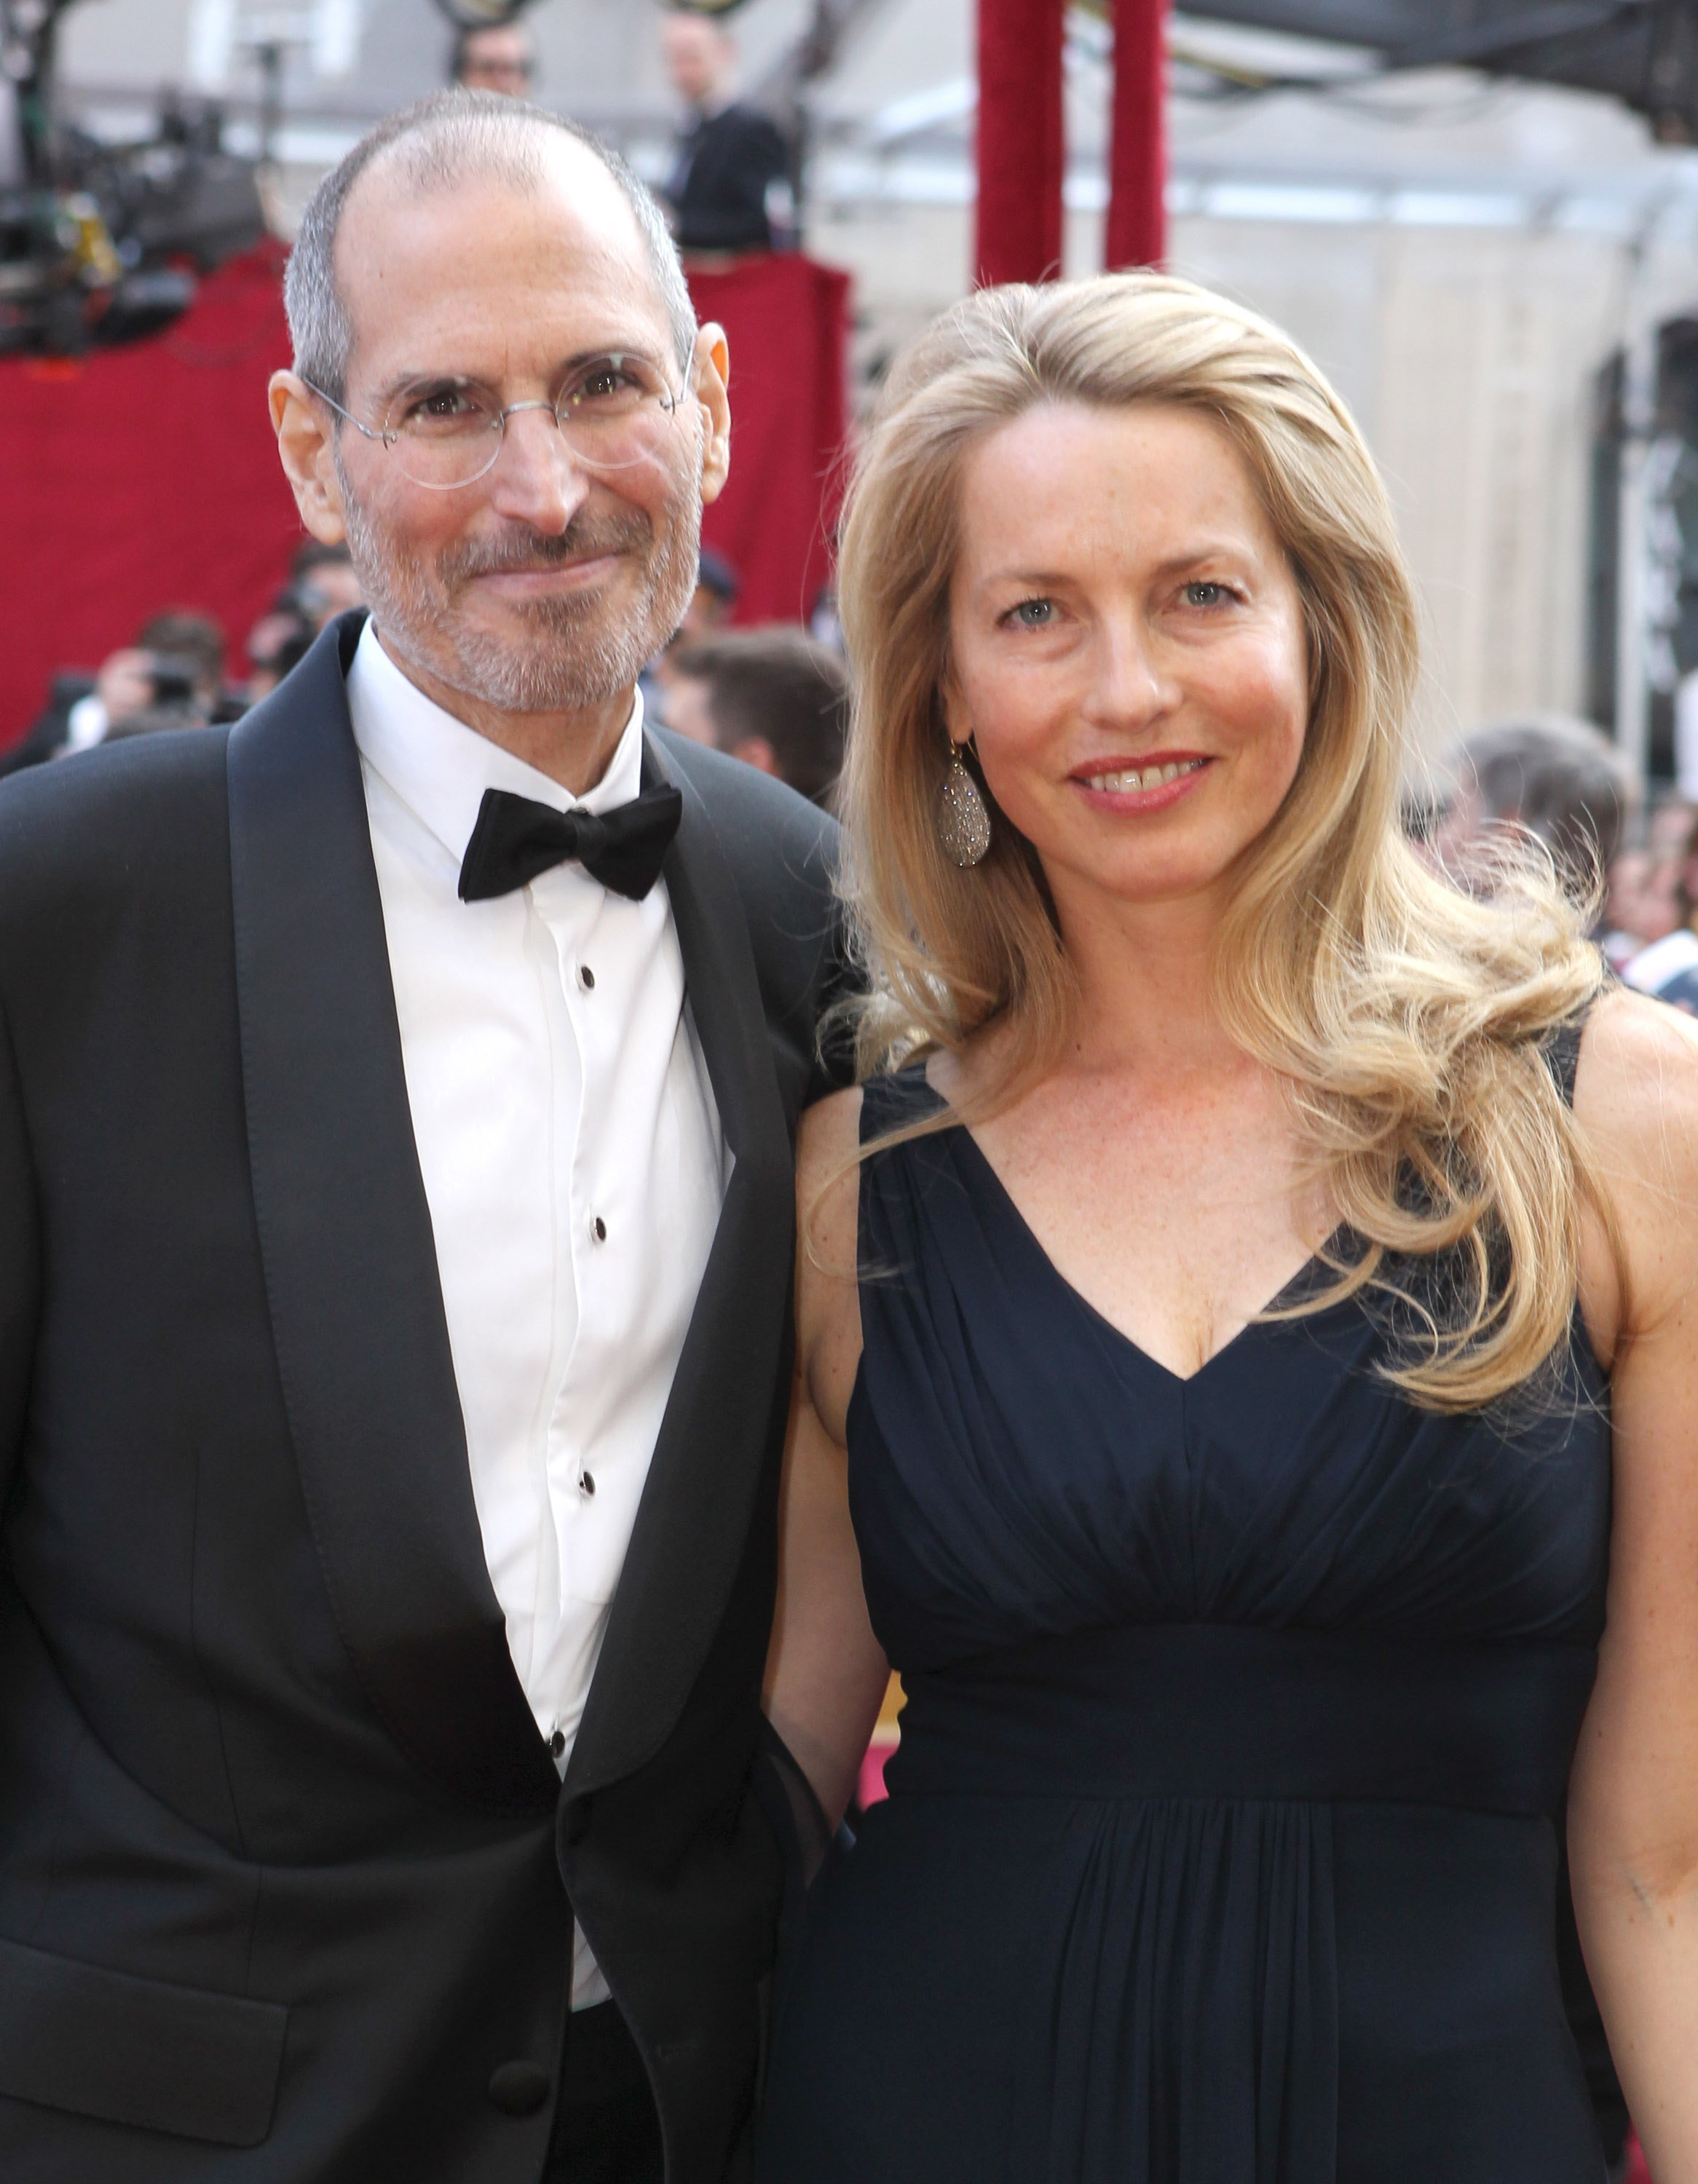 Steve Jobs and Laurene Powell arrive at the 82nd Annual Academy Awards held at Kodak Theatre on March 7, 2010 | Photo: Getty Images